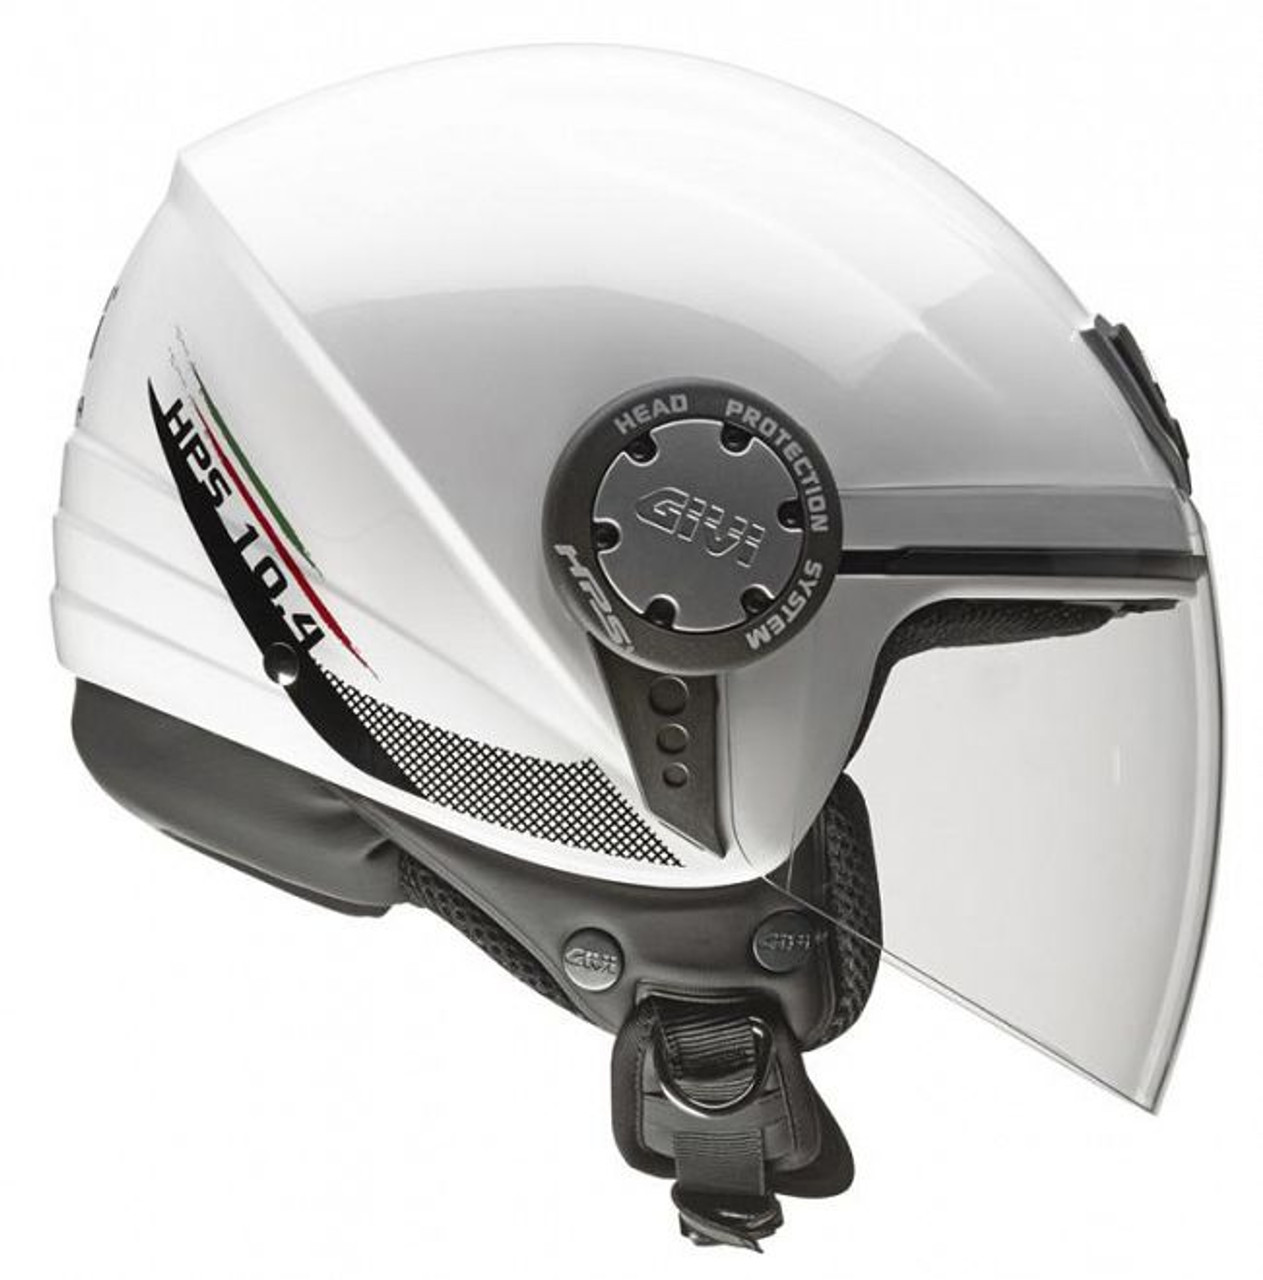 H104 Scooter Open Face Helmet - White, XS only 54cm